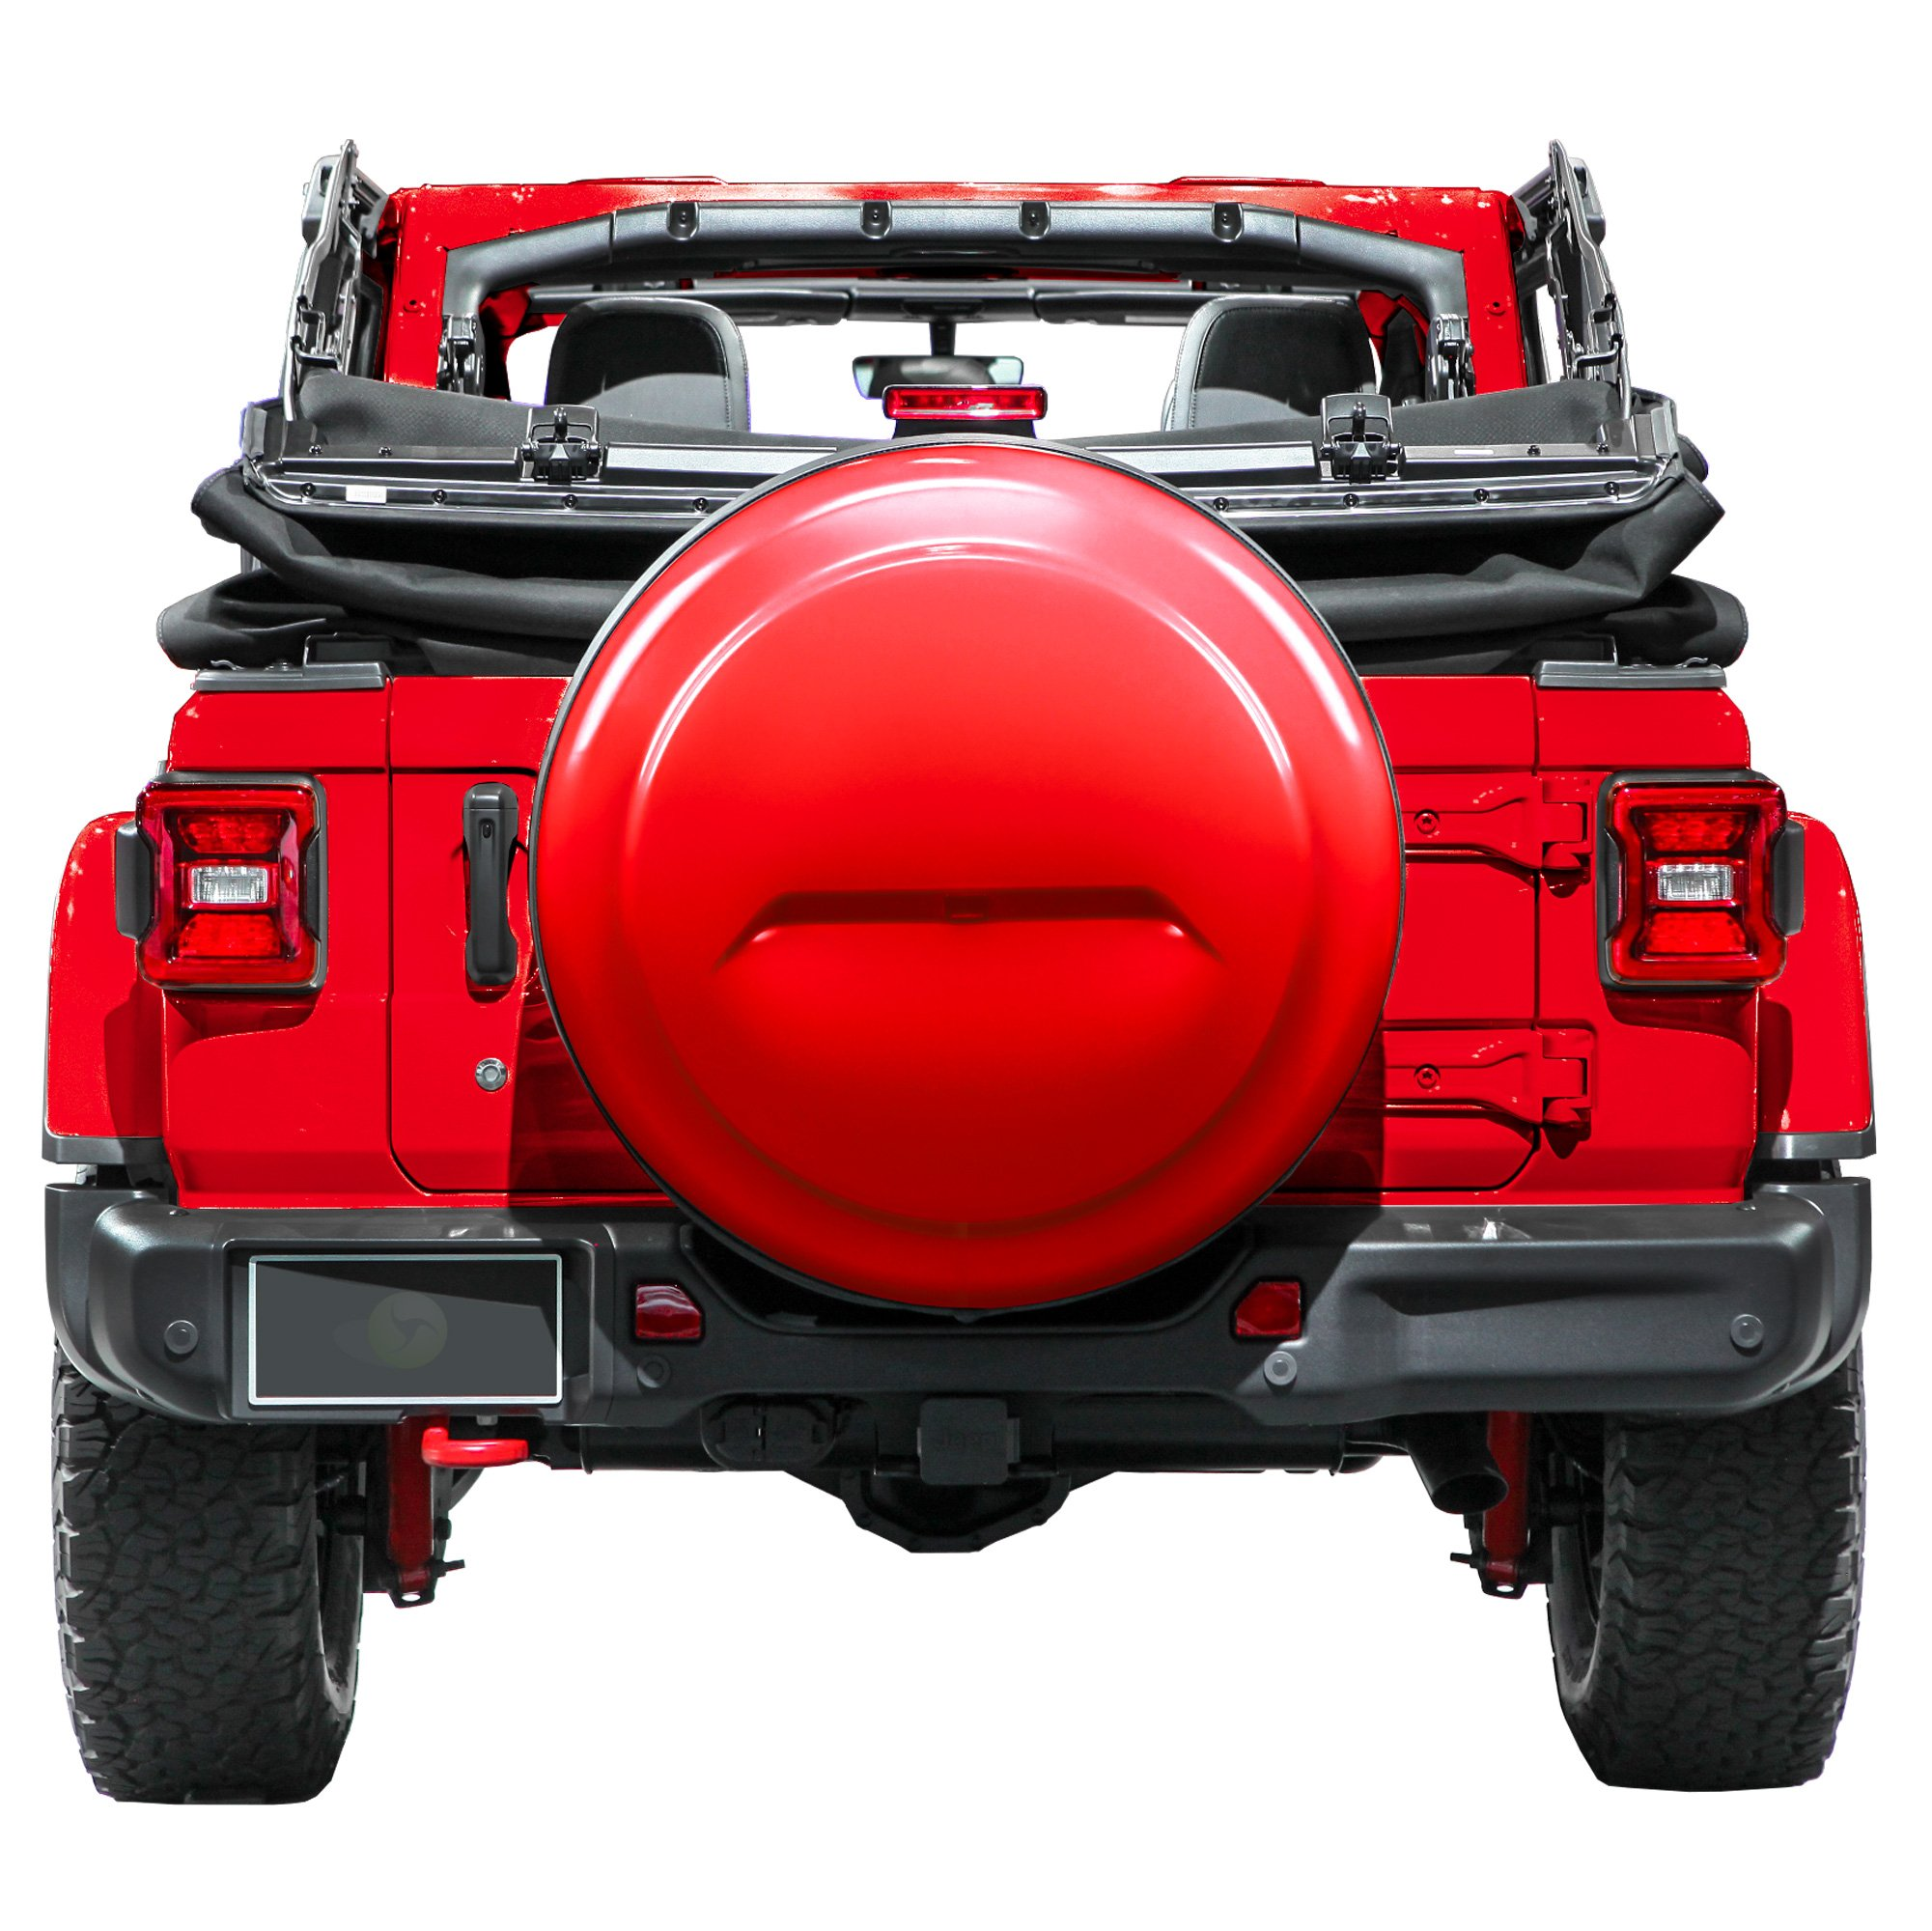 Boomerang 2018 Jeep Wrangler JL & JLU - 32'' Color Matched Rigid Tire Cover (Plastic Face & Vinyl Band) - Firecracker Red